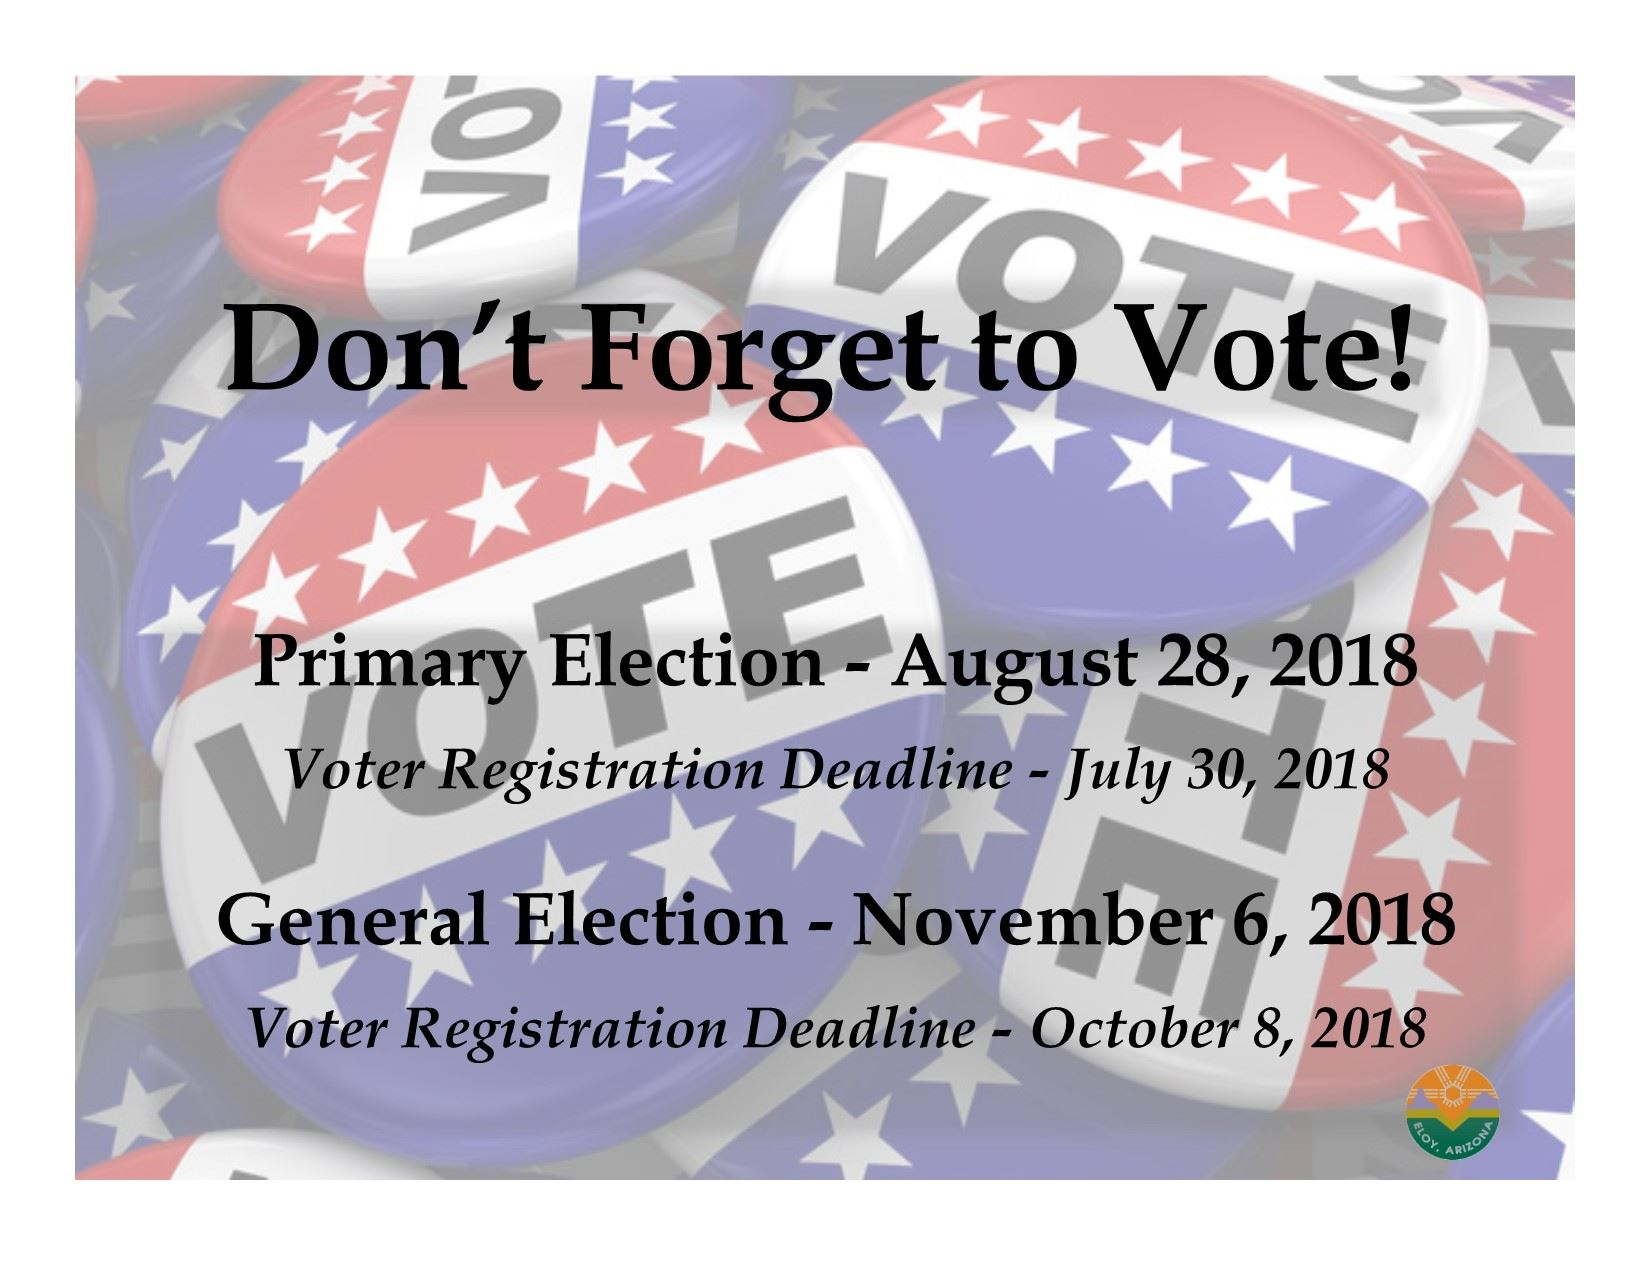 2018 Election Flyer with registration deadlines 2